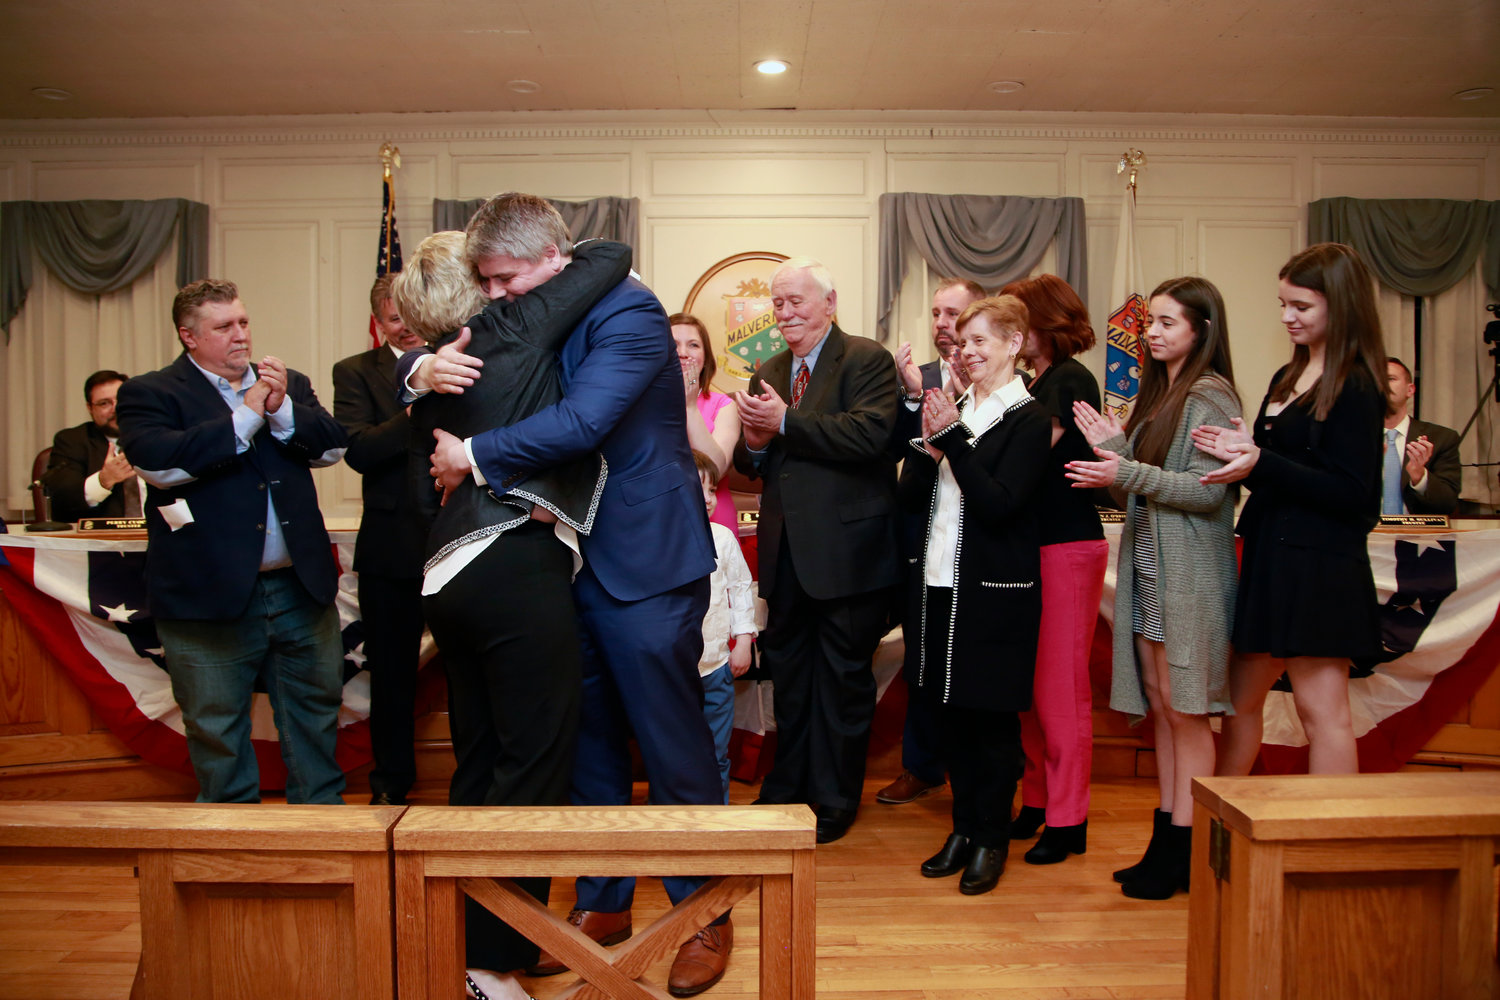 Malverne Mayor Keith Corbett hugged former mayor Patti Ann McDonald after she swore him in on April 2 at Village Hall.